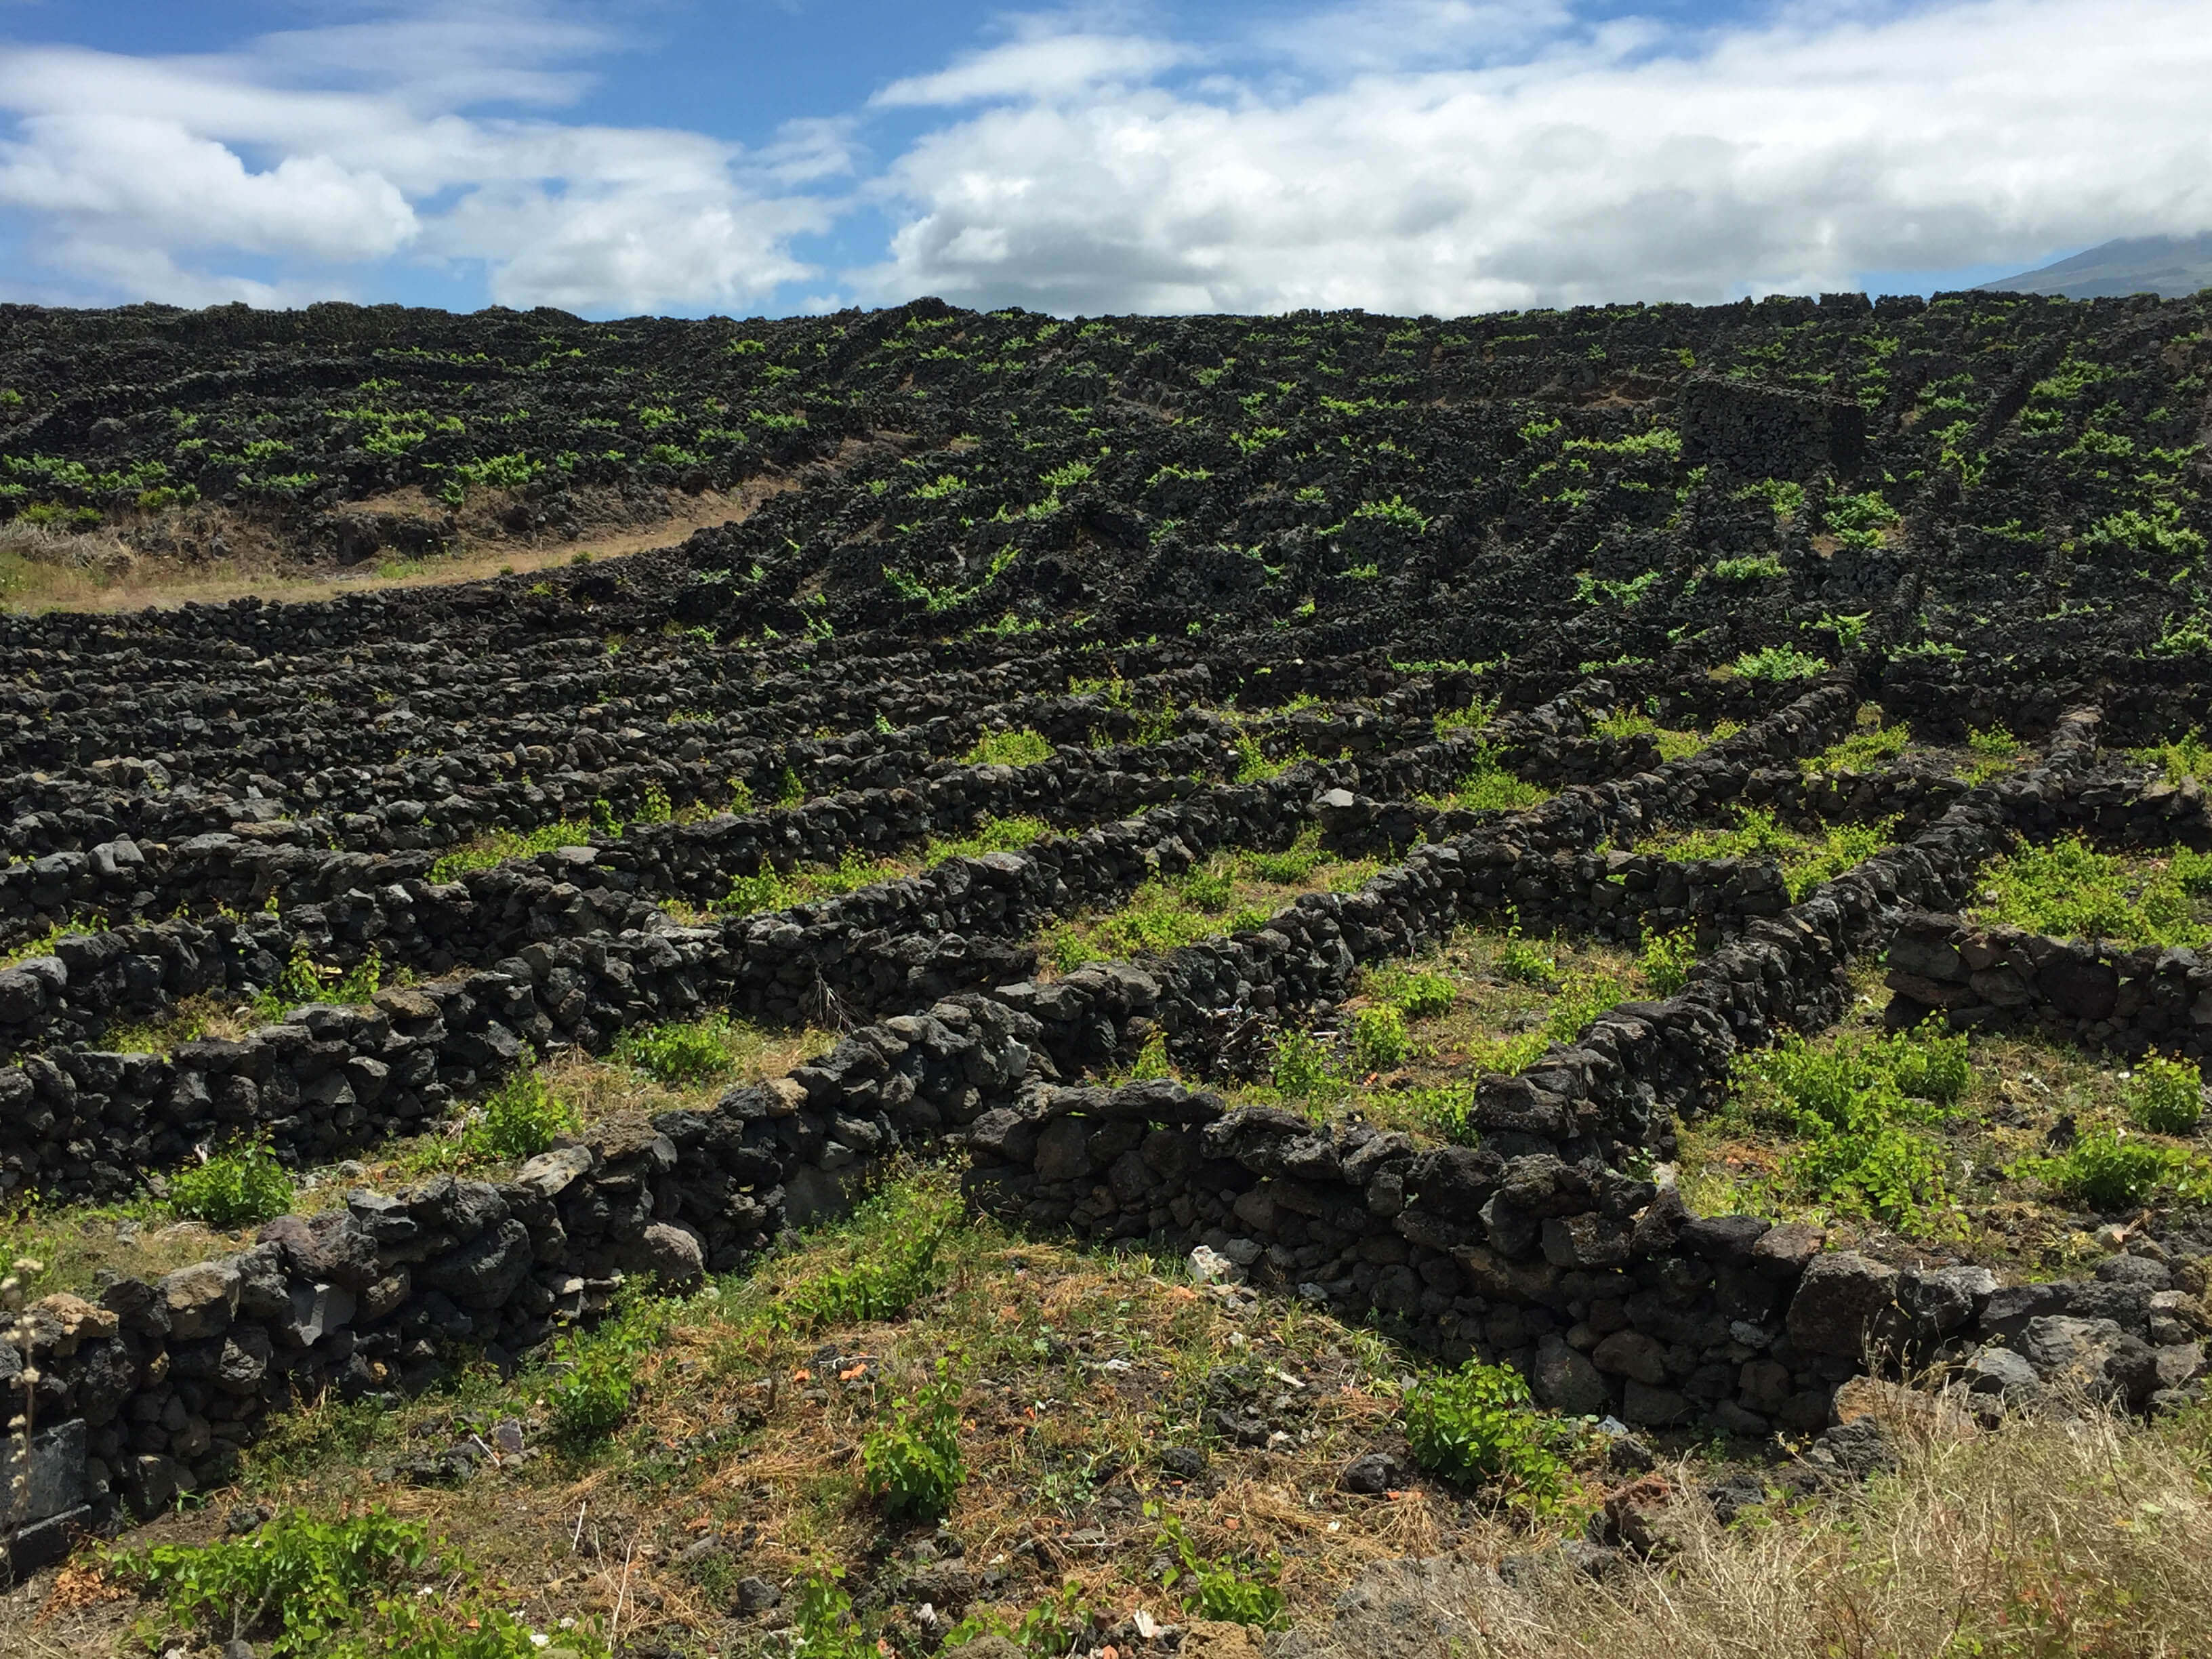 Pico Island vineyards, Azores